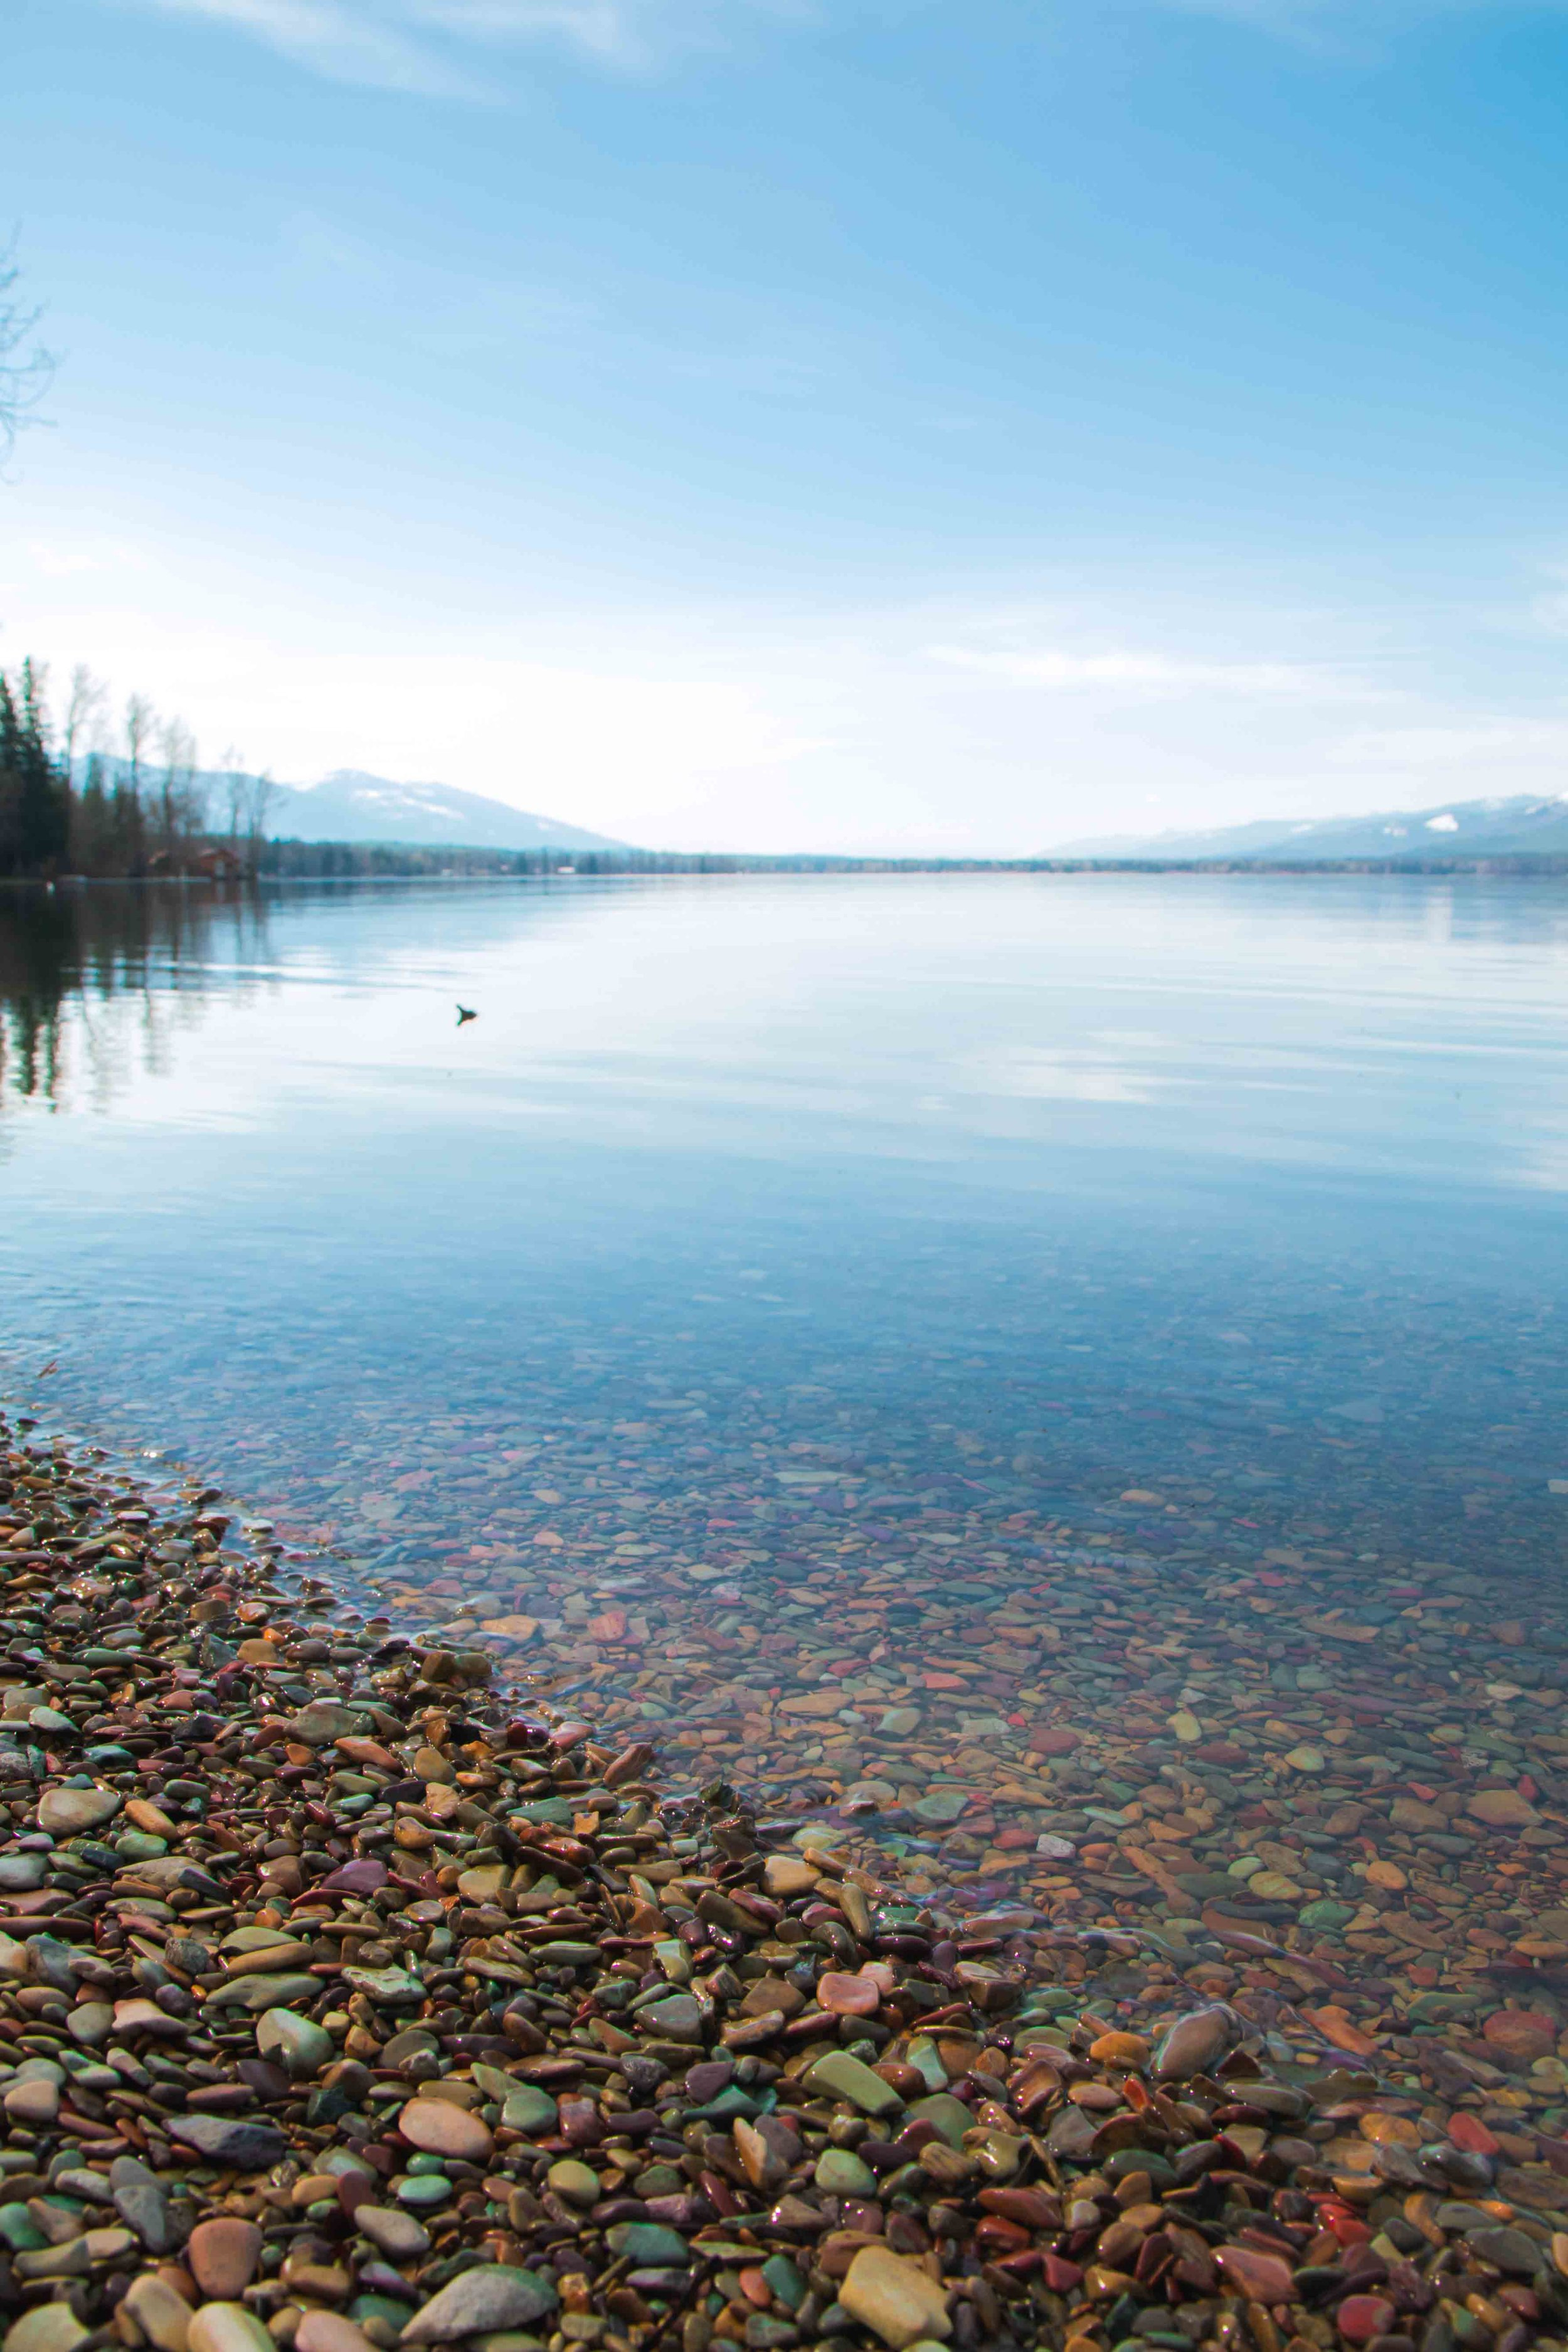 Nestled between the majestic Mission and Swan Mountain Ranges, Salmon Lake in Montana provides a beautiful and tranquil setting to enjoy boating, fishing, swimming and wildlife viewing.